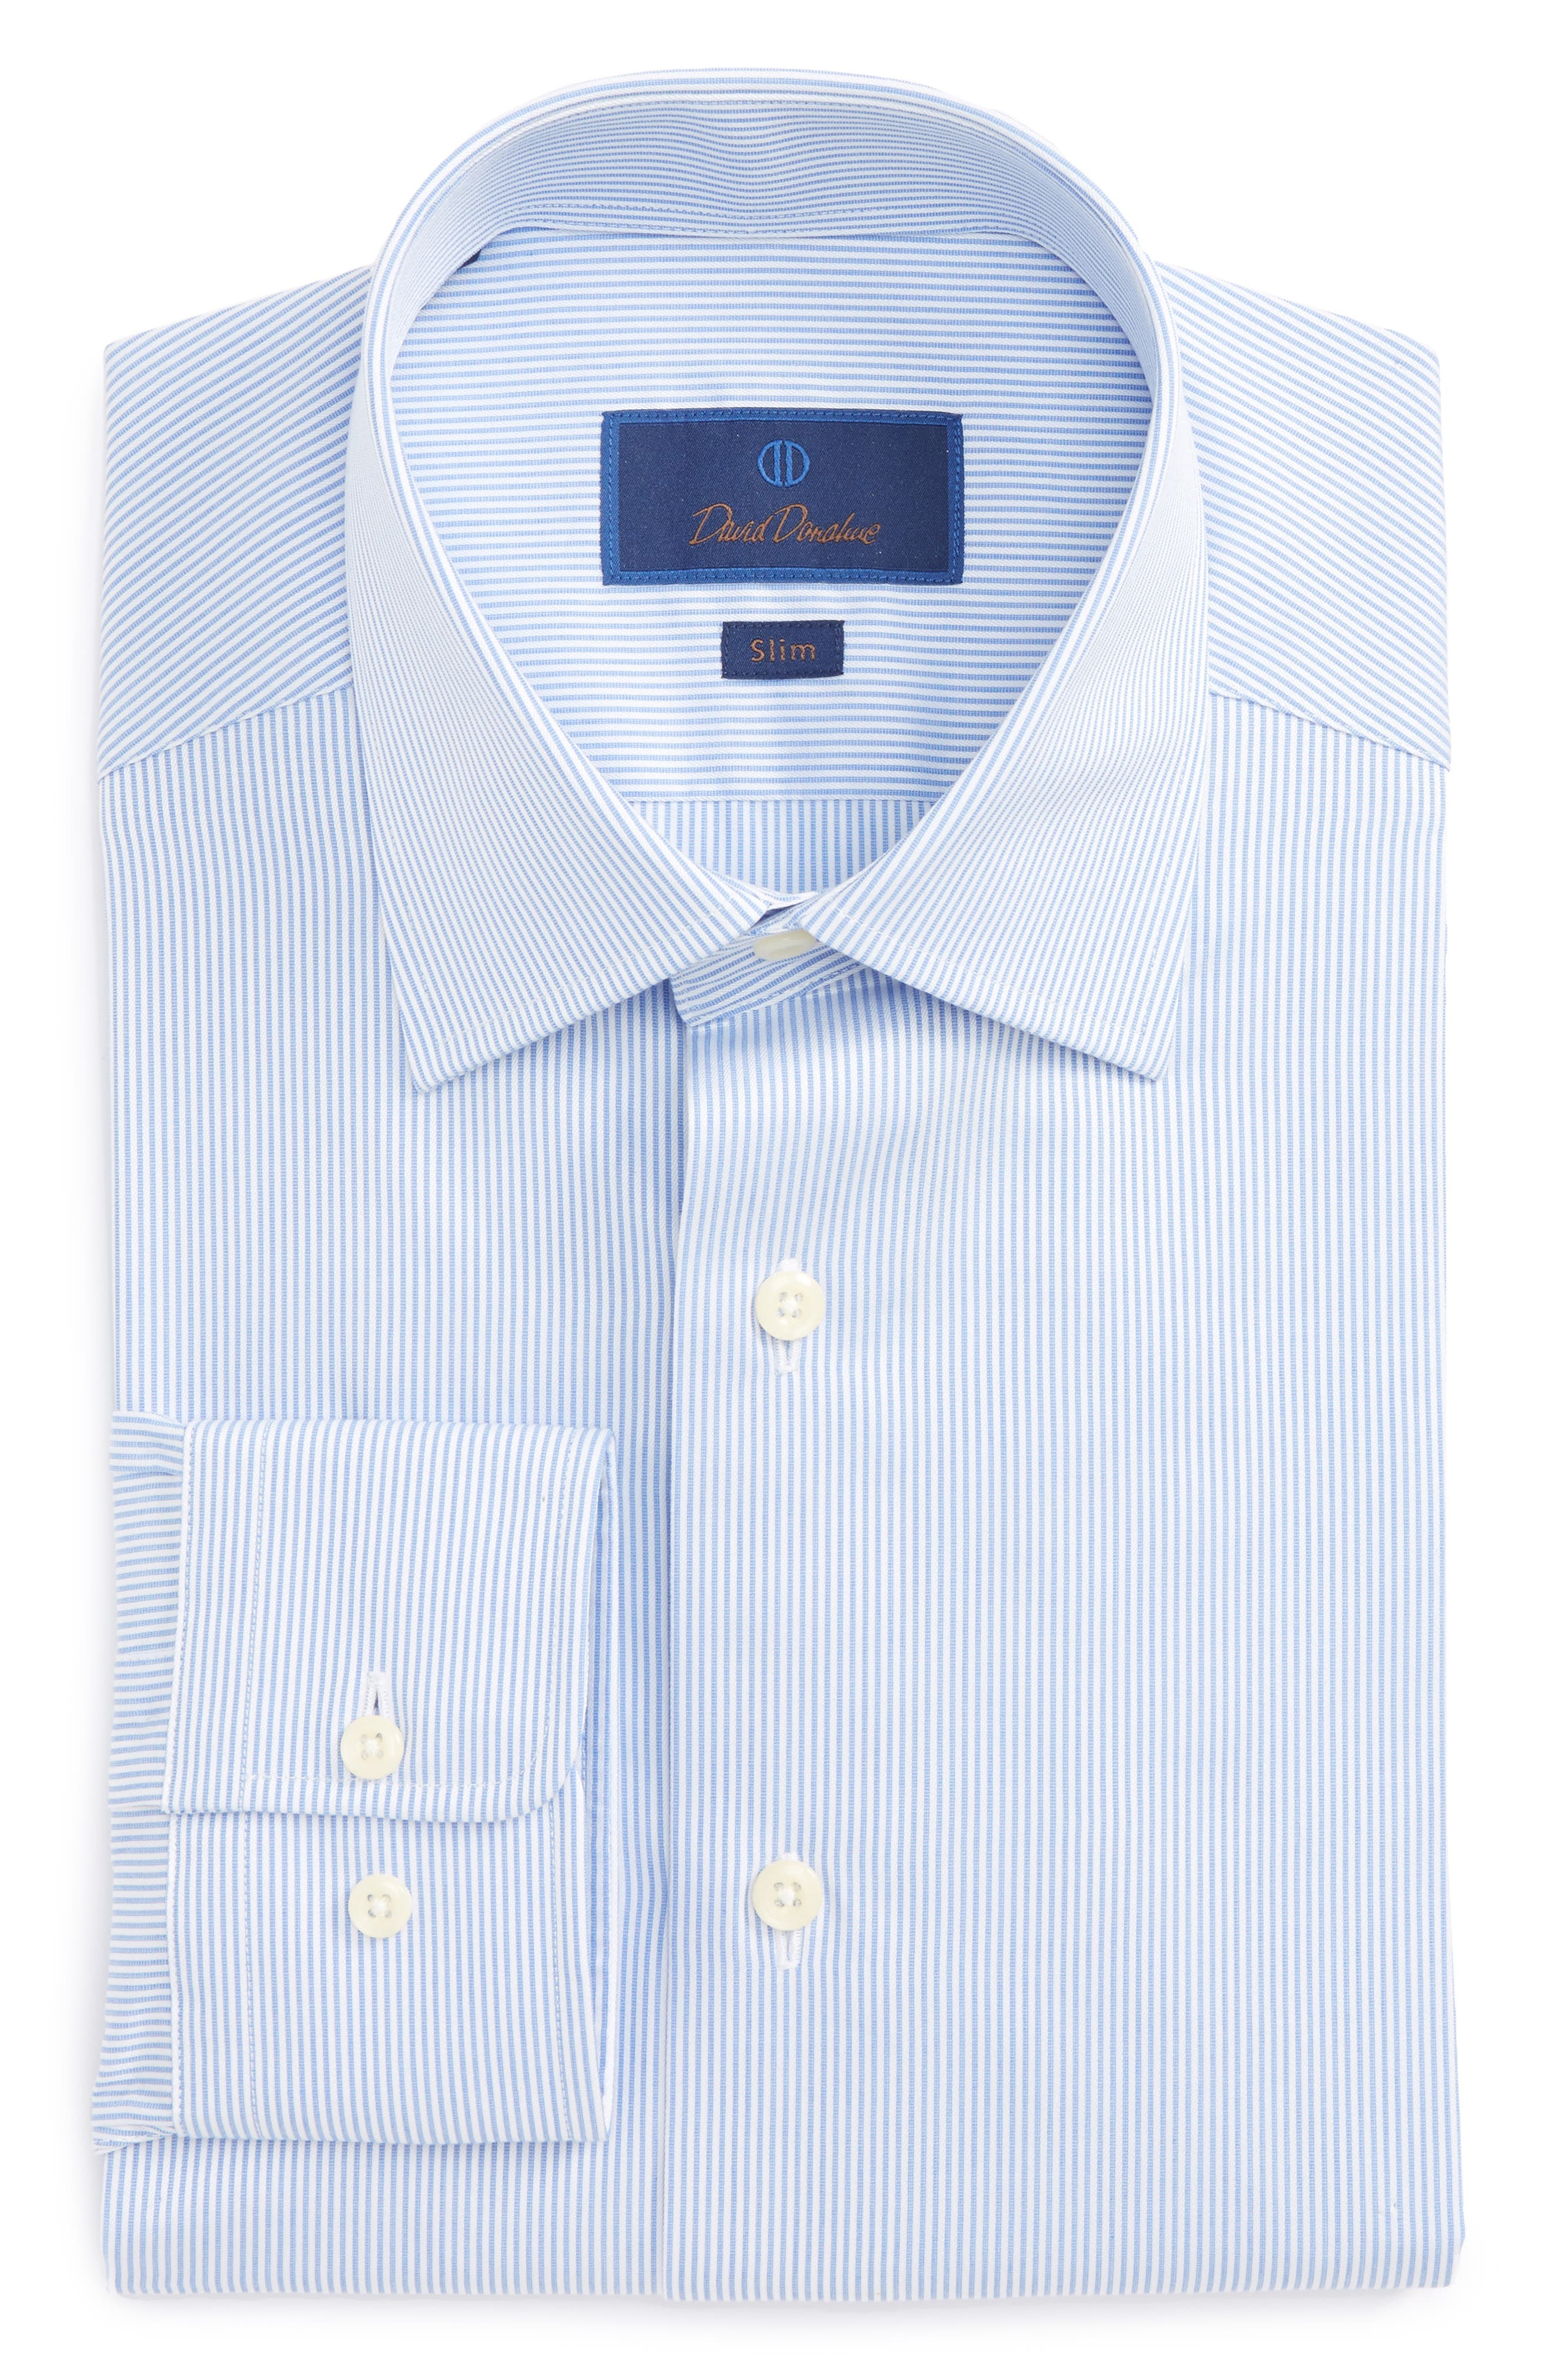 Slim Fit Stripe Dress Shirt,                         Main,                         color, Blue